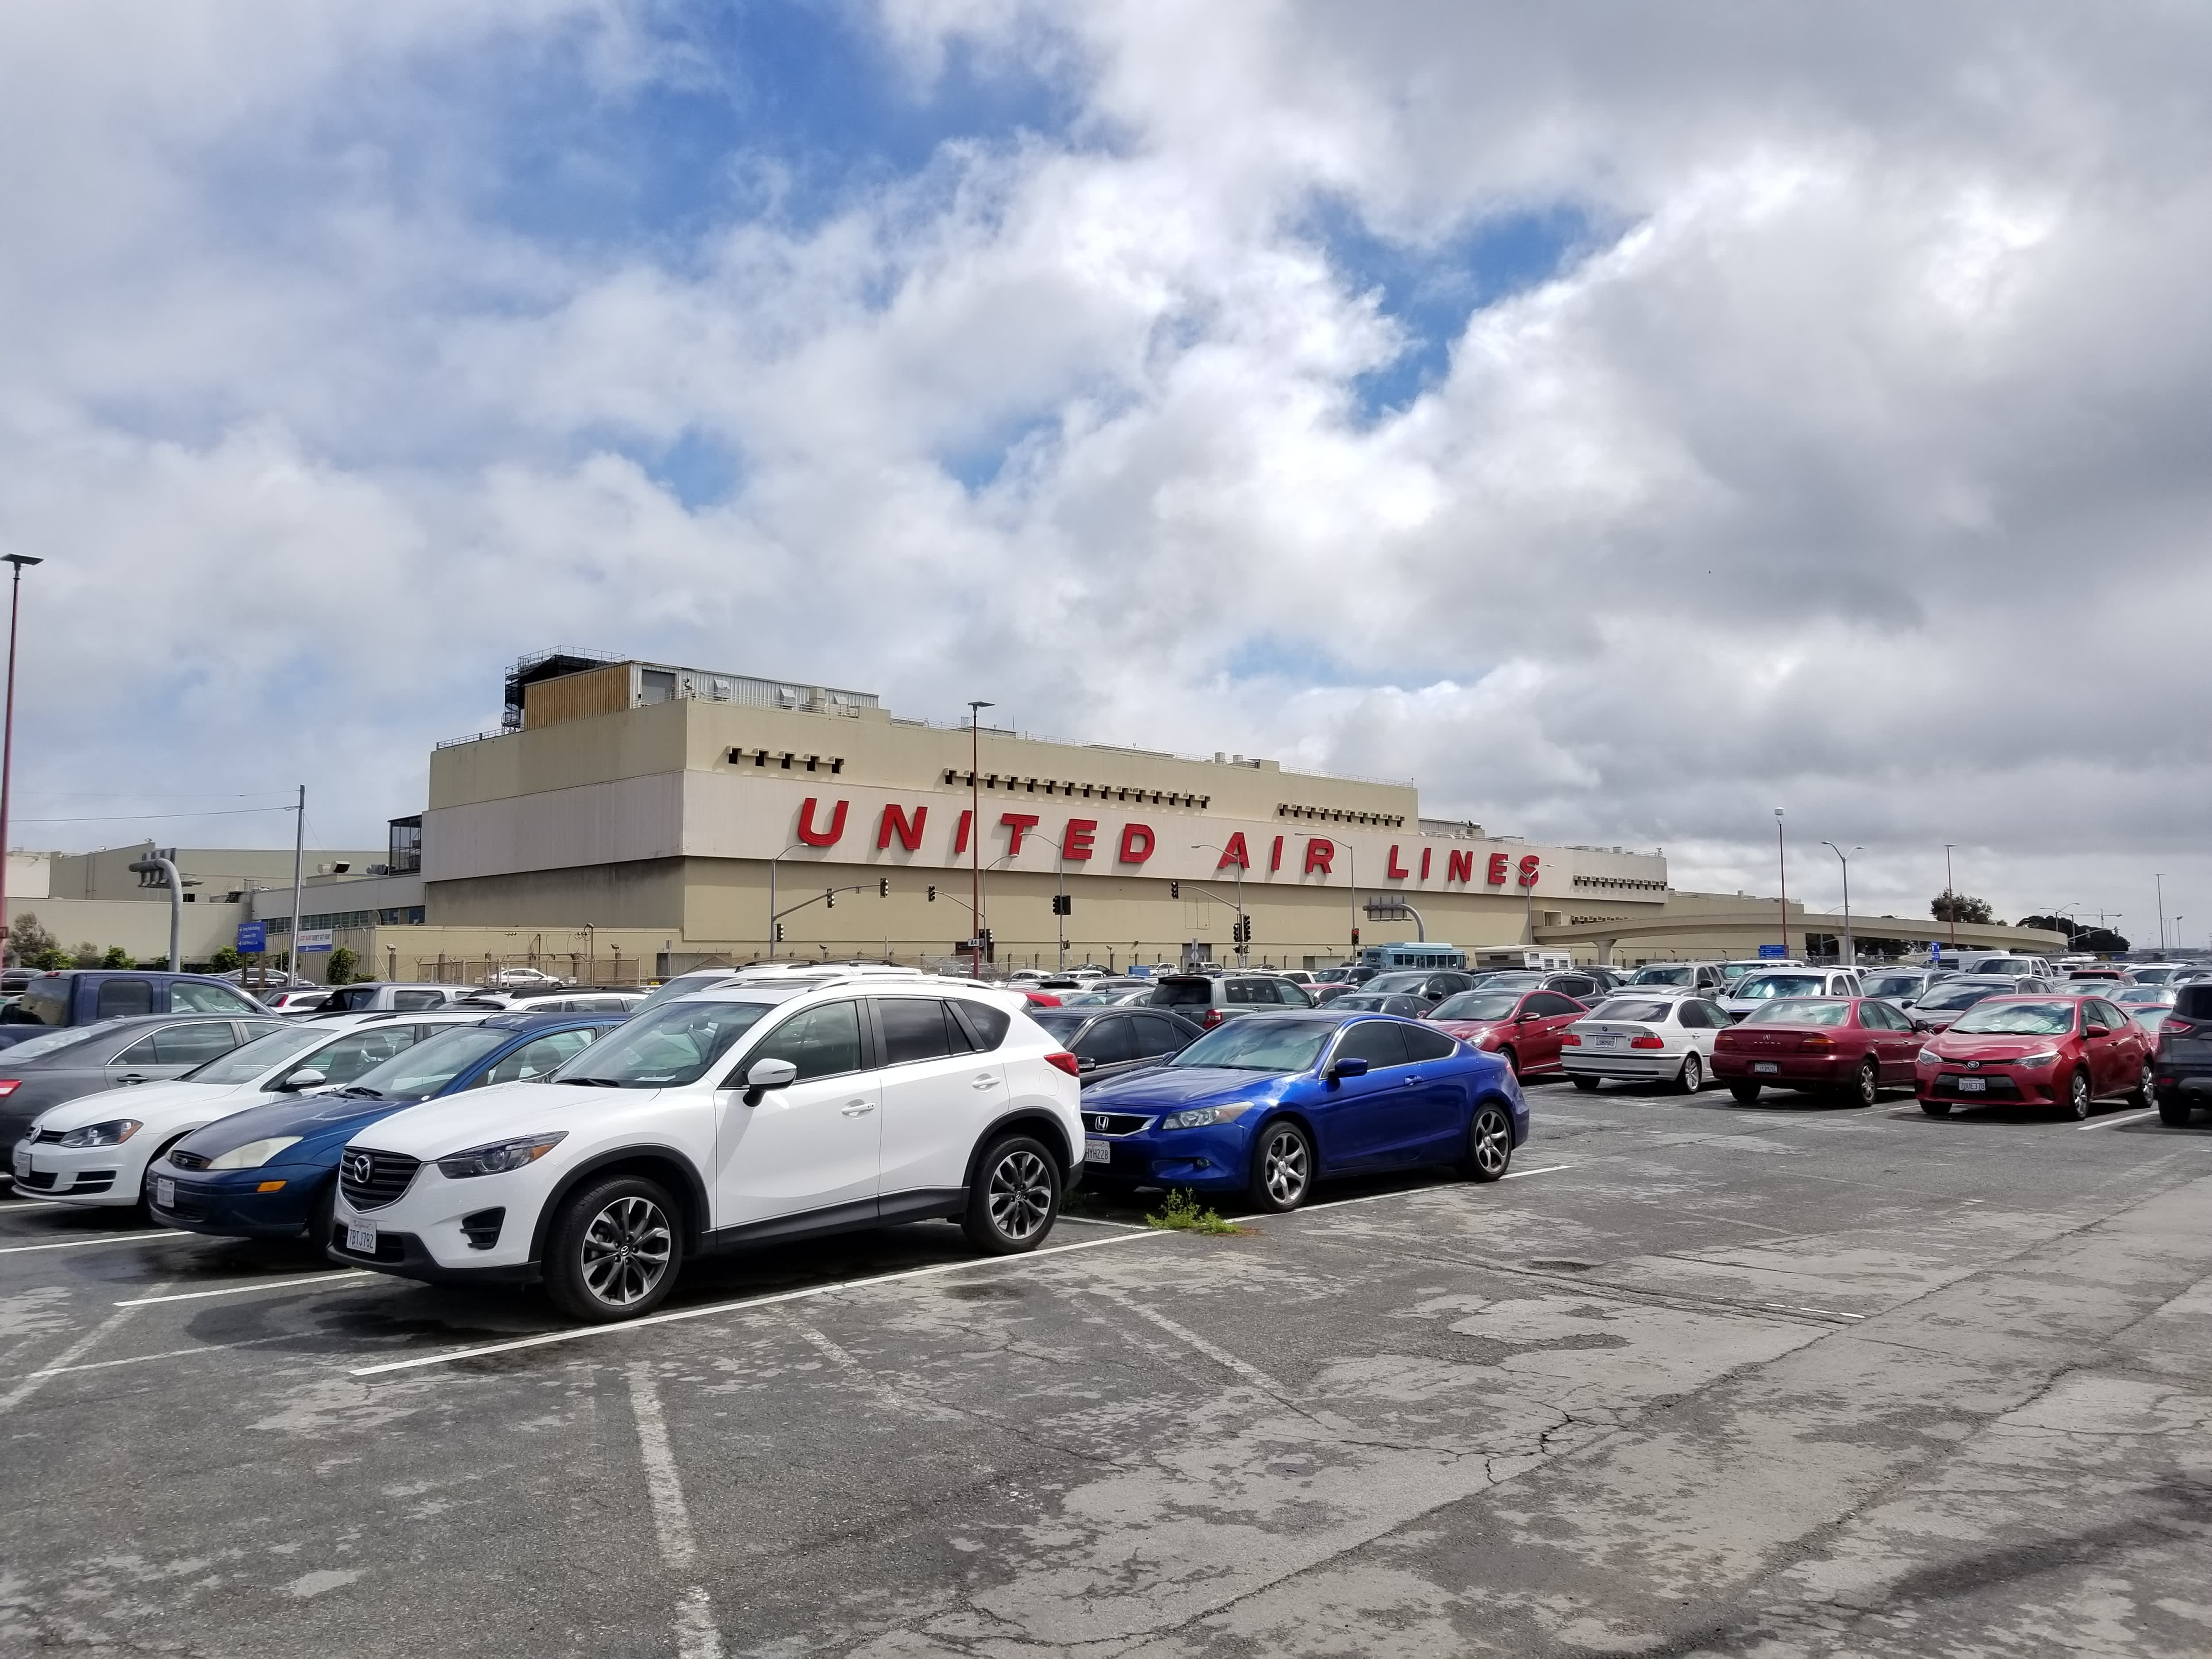 Airports use parking loyalty programs to compete against